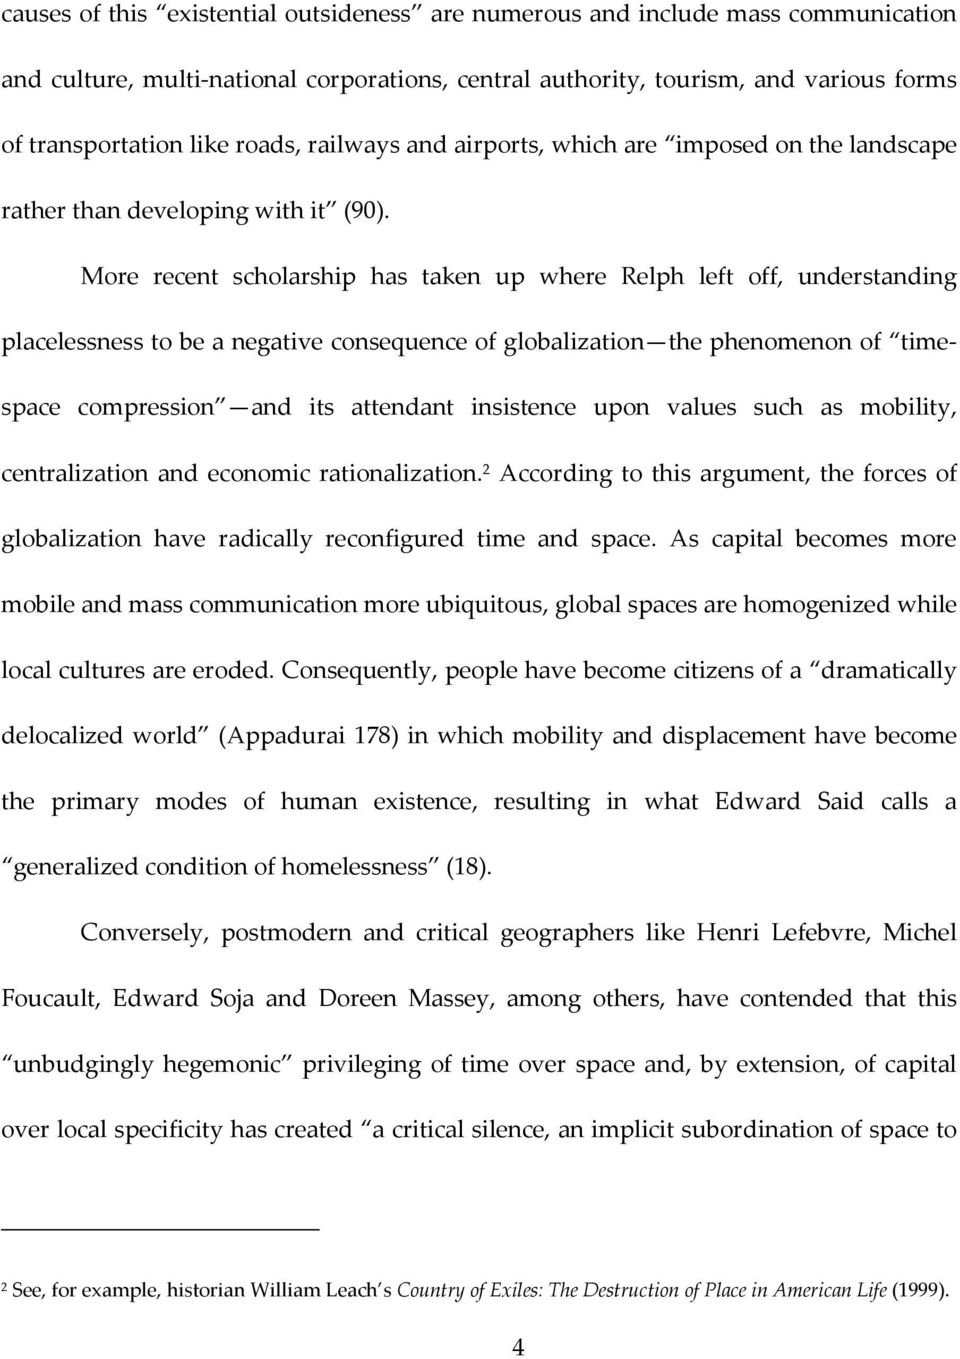 More recent scholarship has taken up where Relph left off, understanding placelessness to be a negative consequence of globalization the phenomenon of timespace compression and its attendant